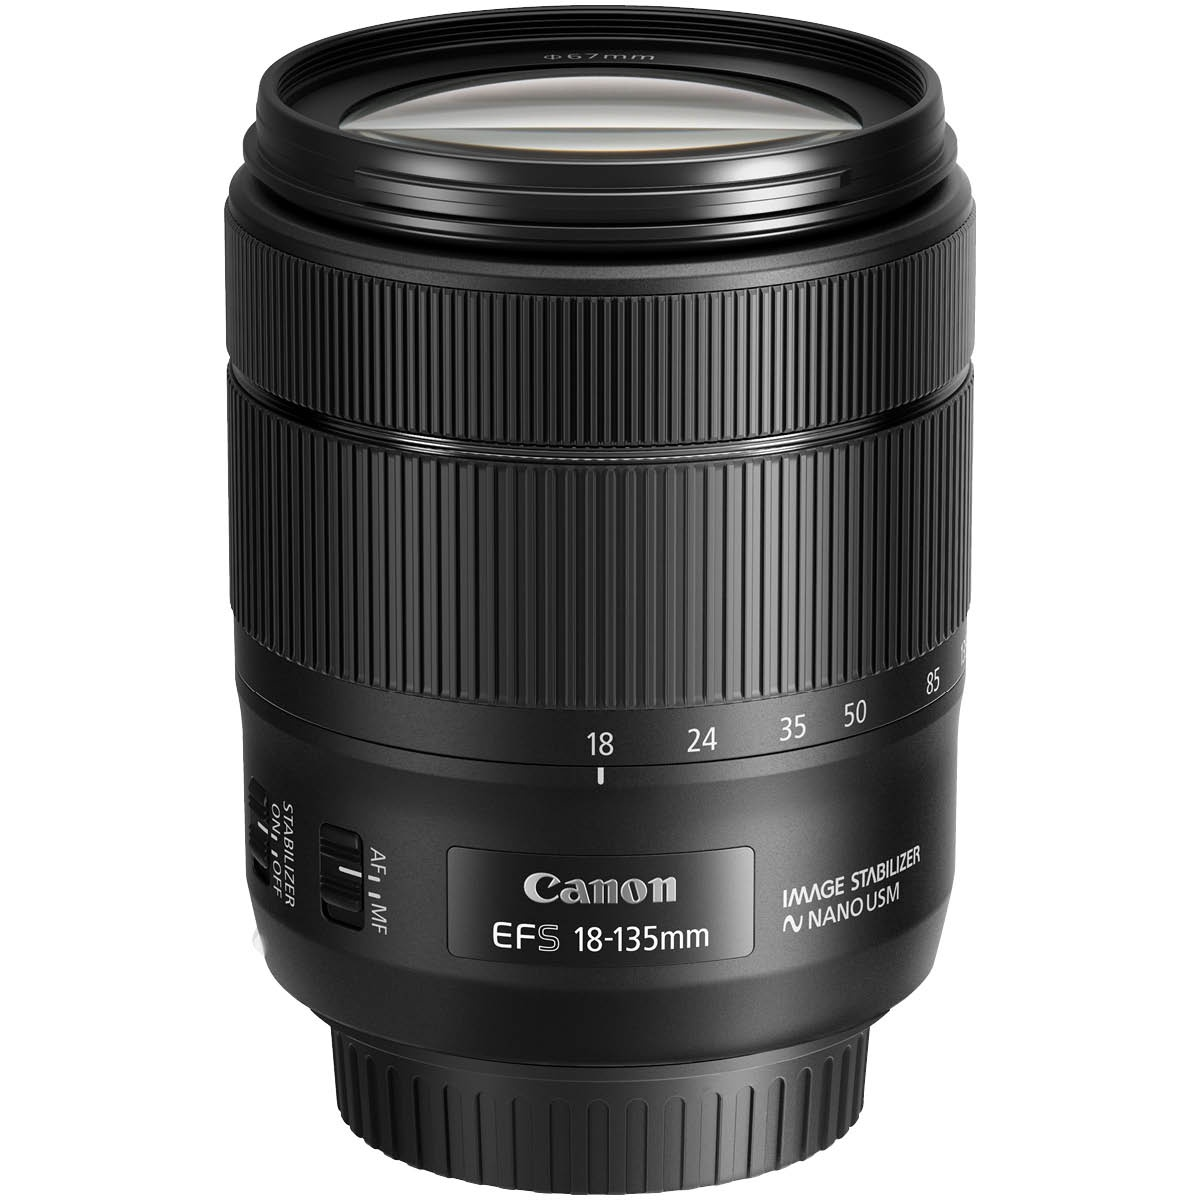 Canon EF-S 18-135 mm 1:3,5-5,6 IS USM